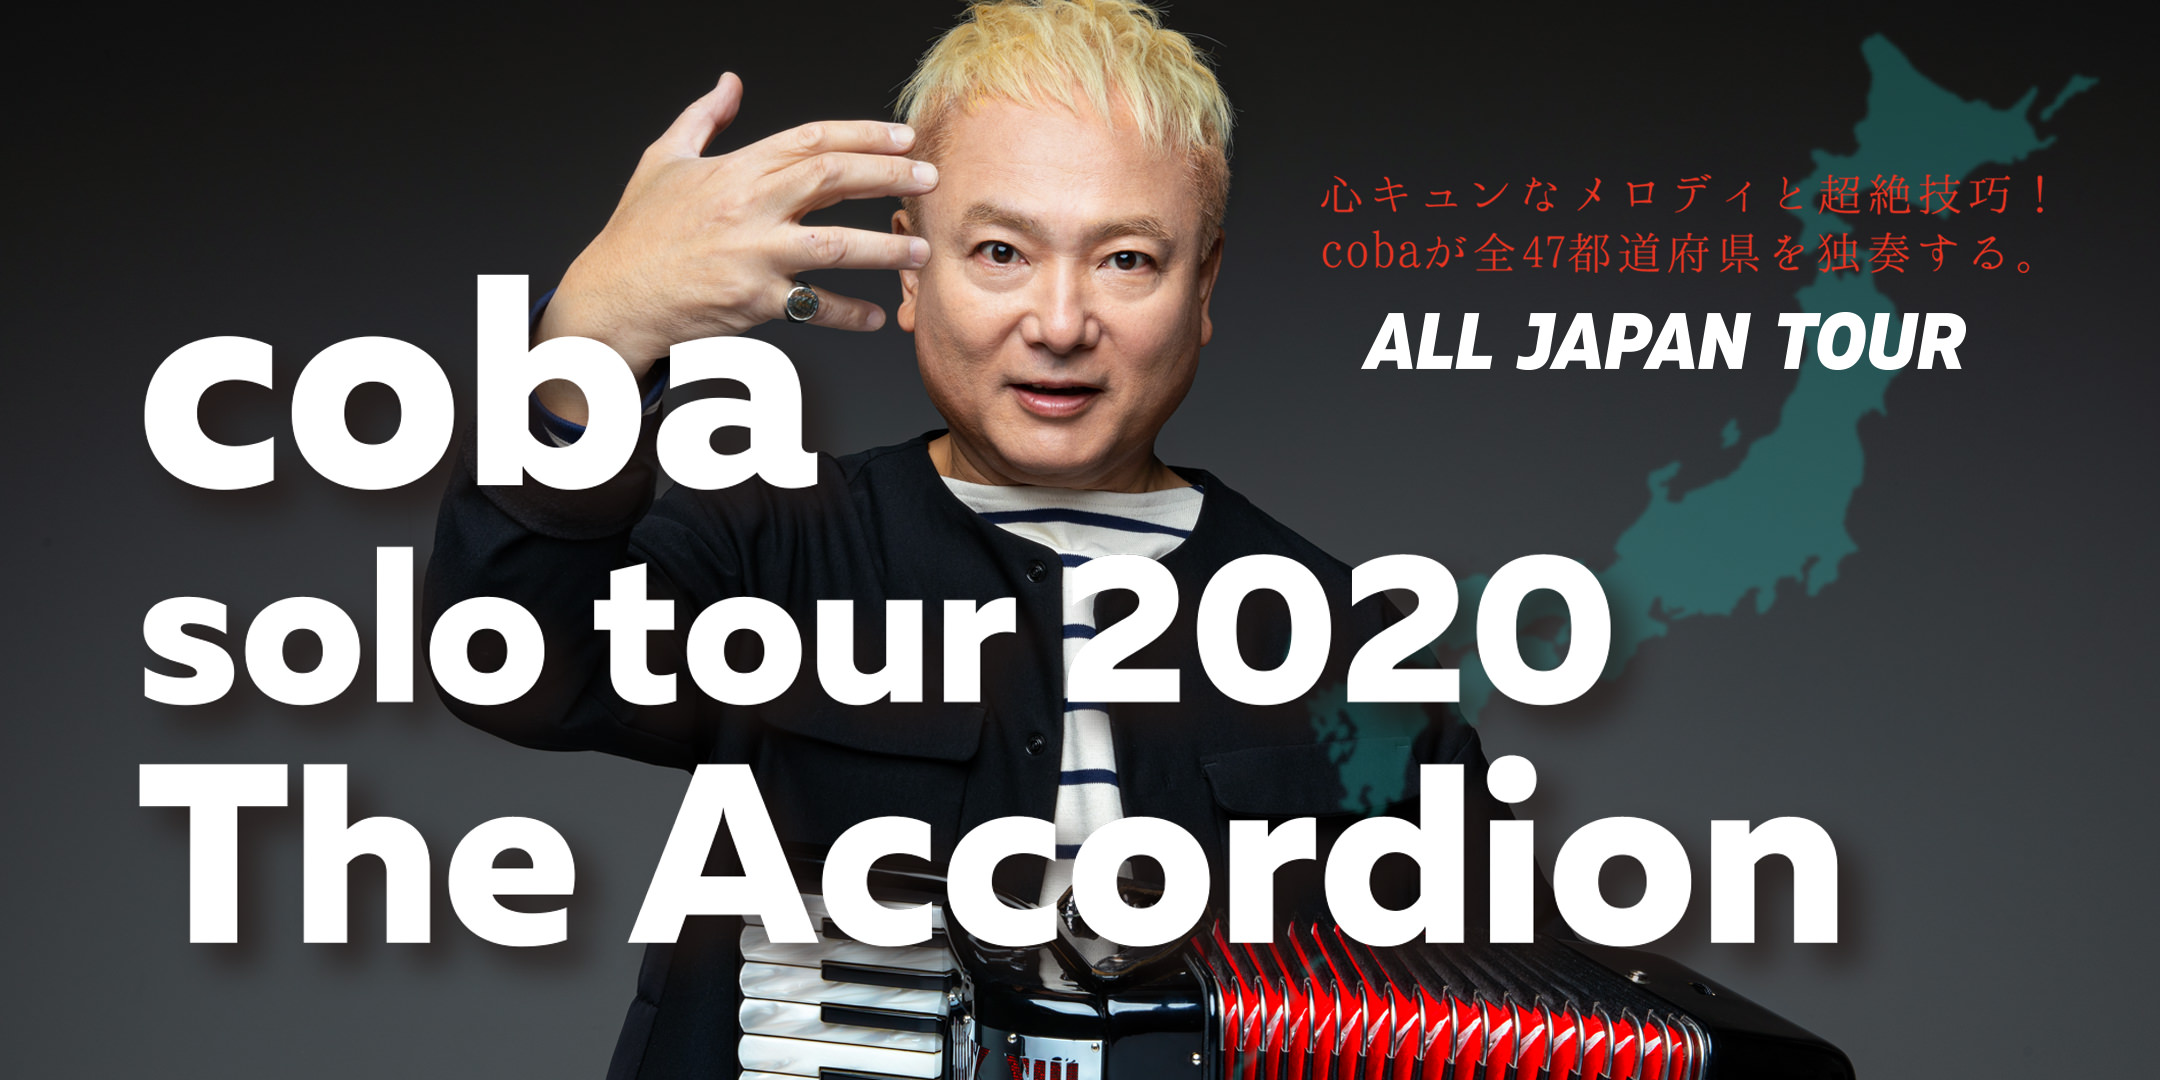 coba solo tour 2020 The Accordion